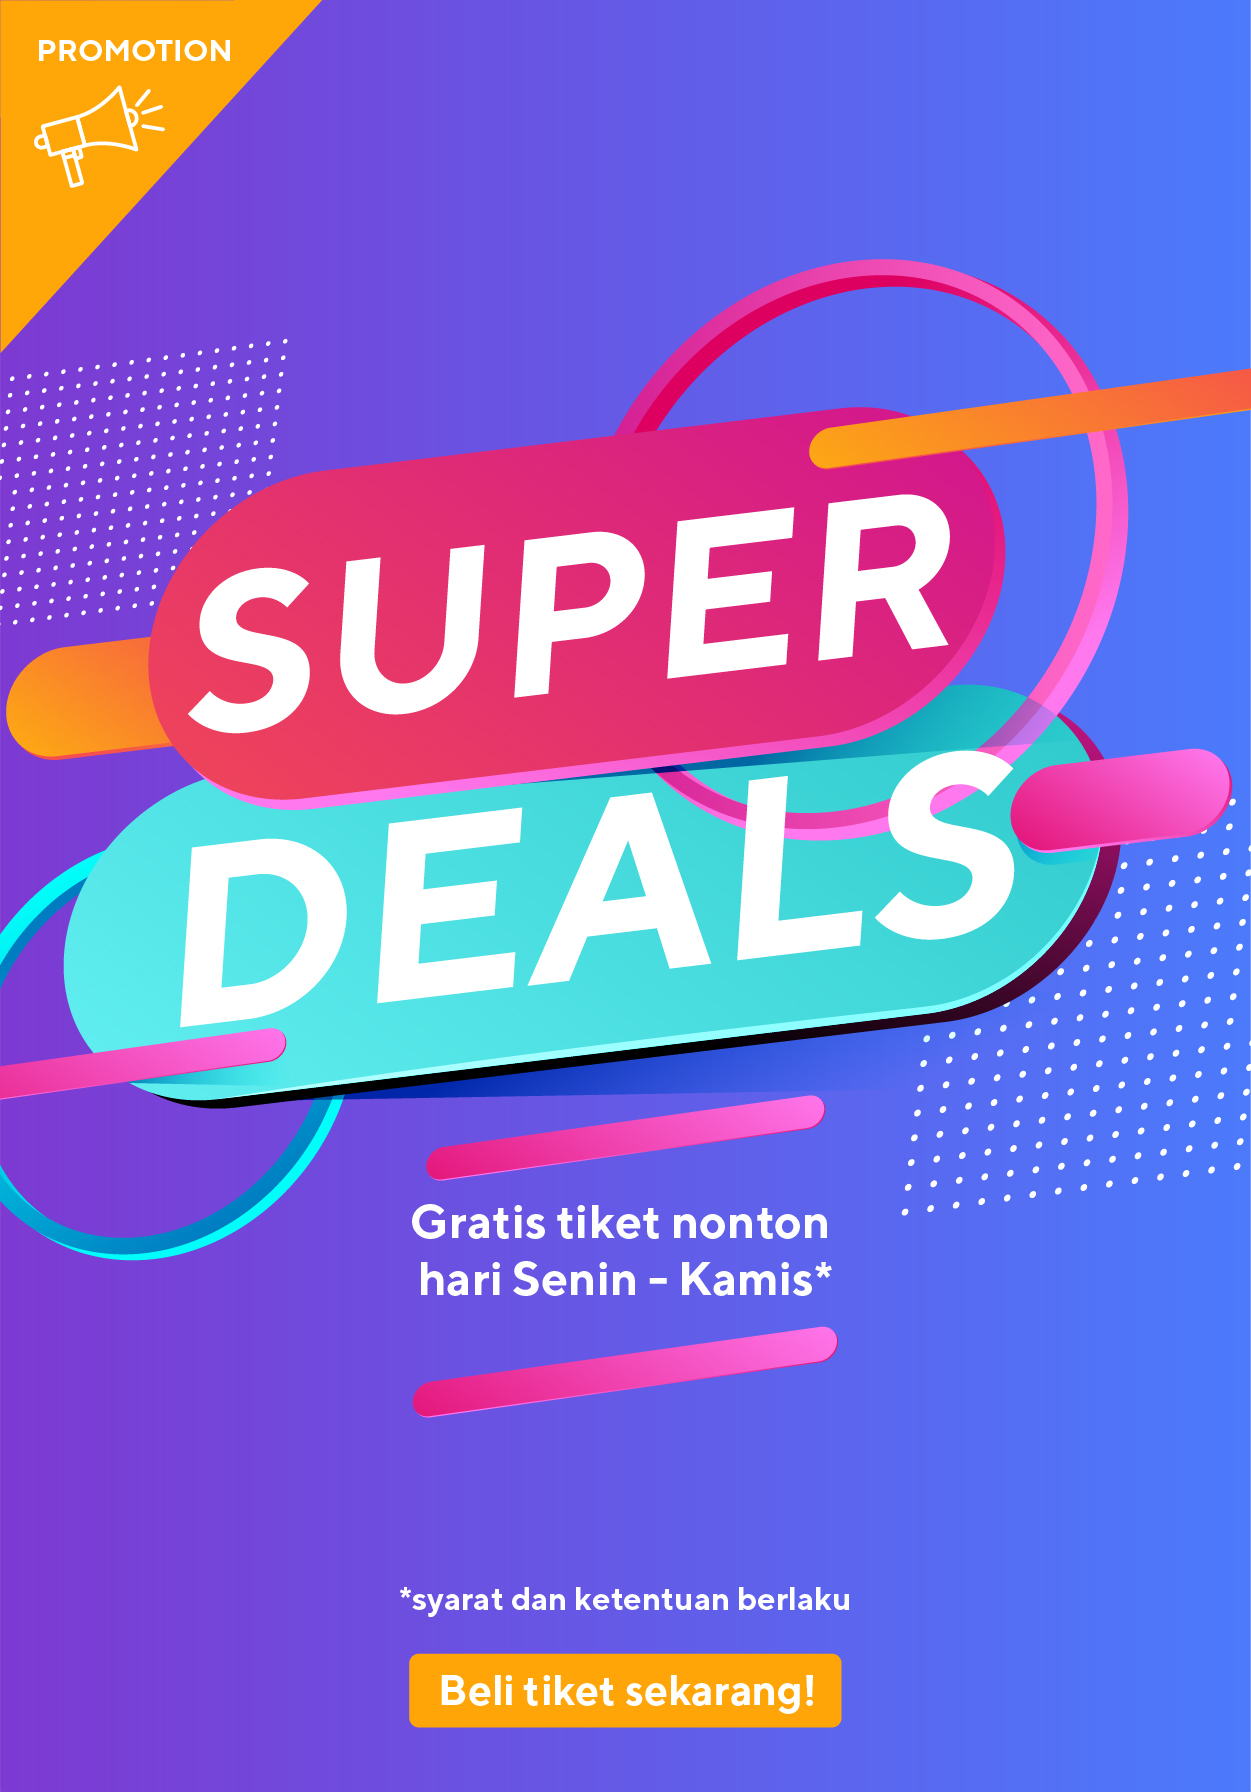 Cinemaxx Theater Promo Super Deal Beli 2 Gratis 1 - Cinemaxx Coupons